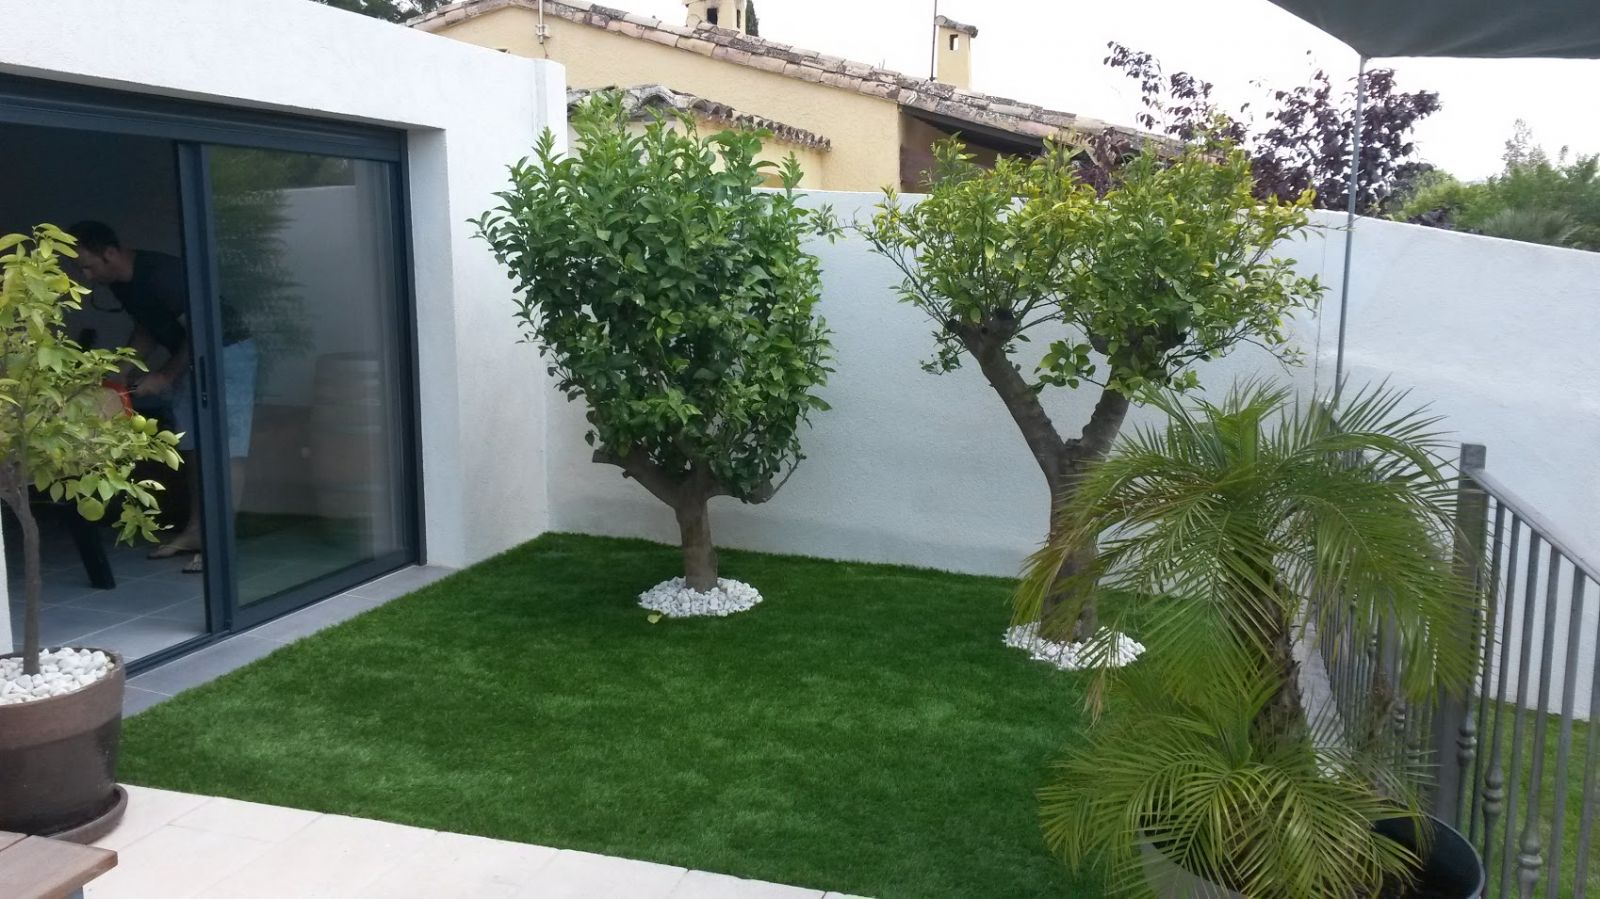 Am nagement de jardin avec pose de gazon synth tique sur for Decoration jardin villa